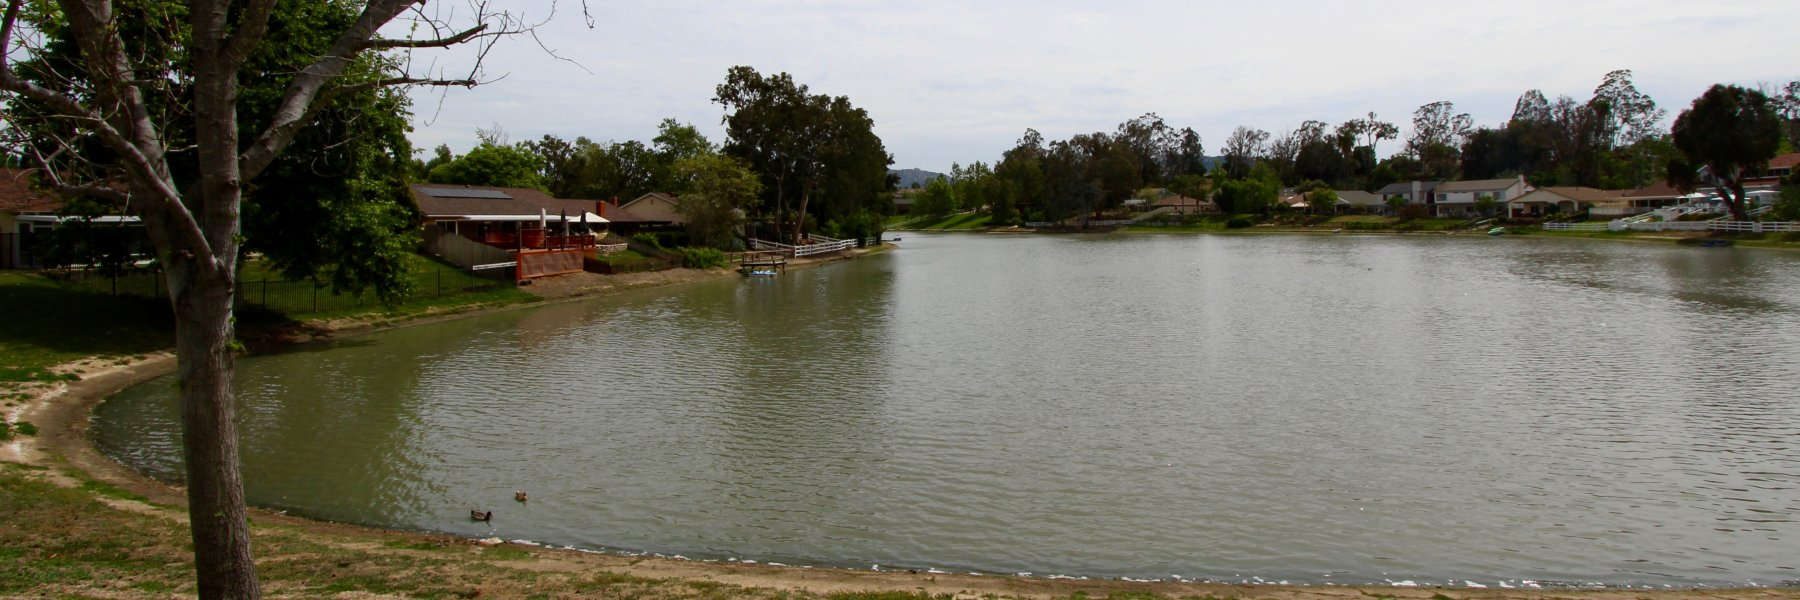 Lake Village is a community of homes in Temecula California